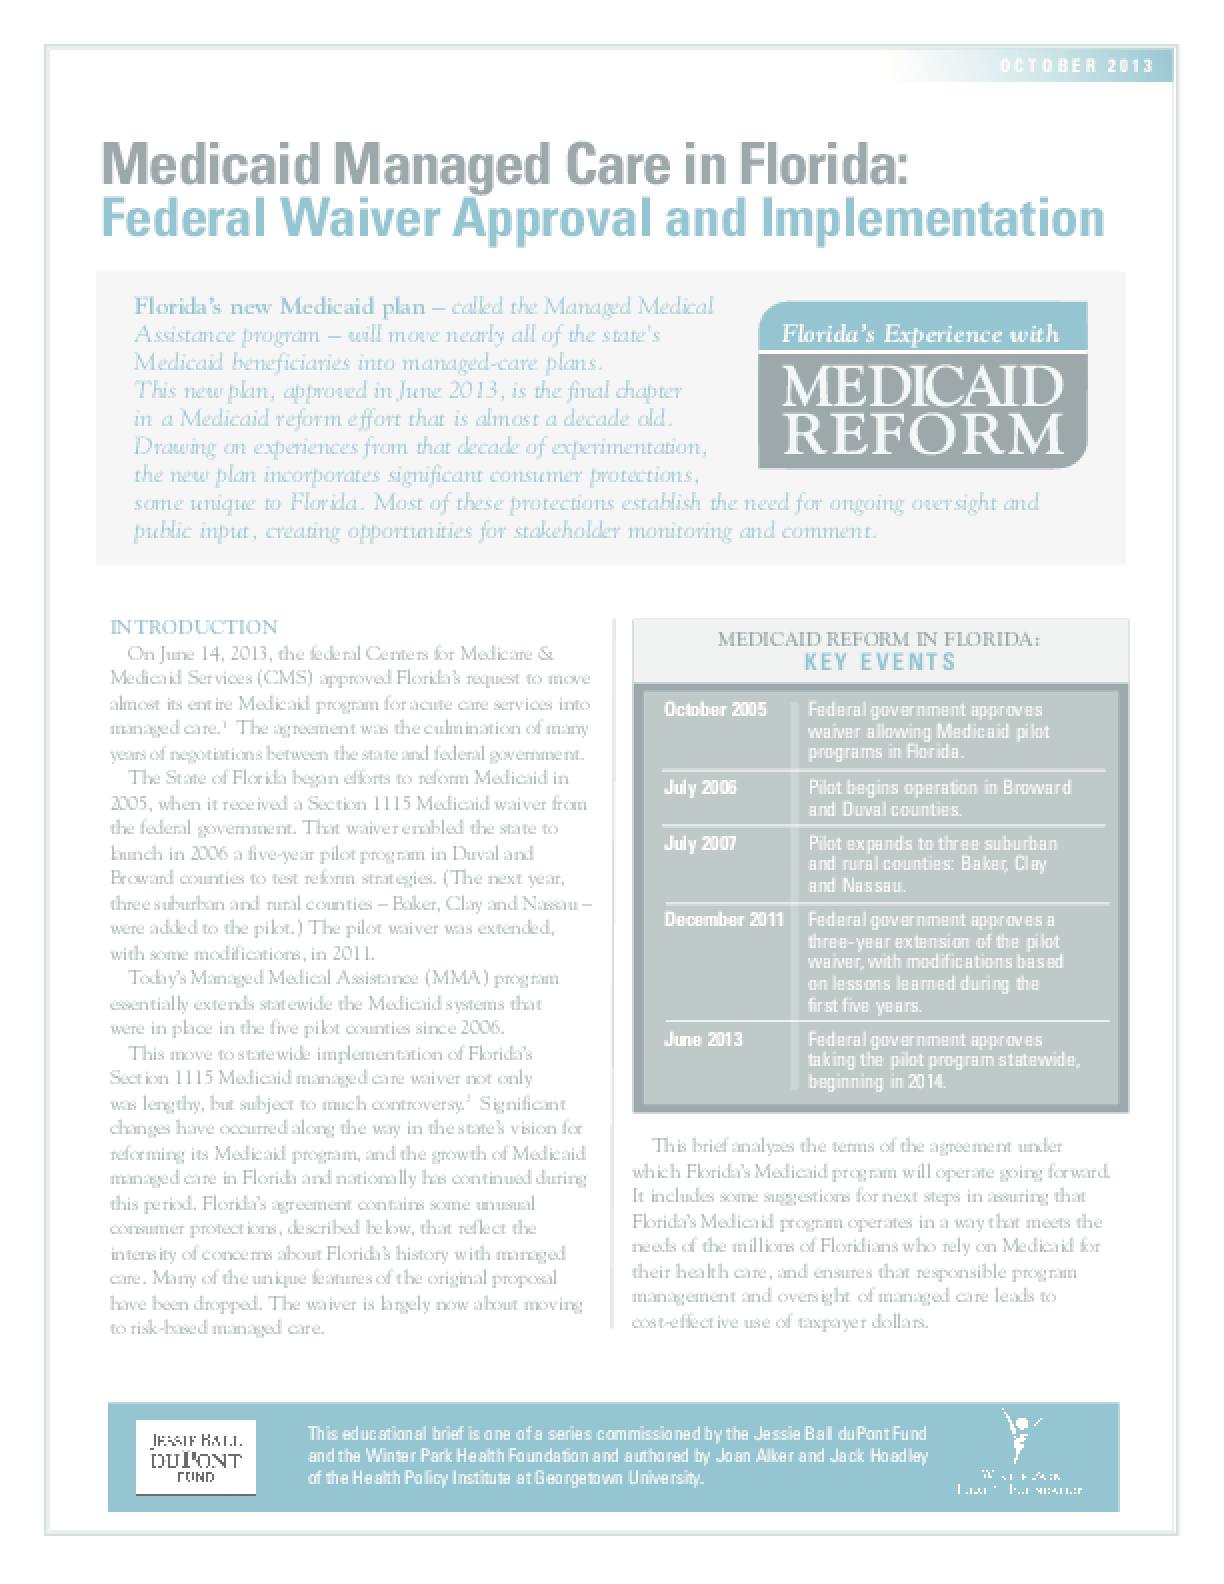 Medicaid Managed Care in Florida: Federal Waiver Approval and Implementation